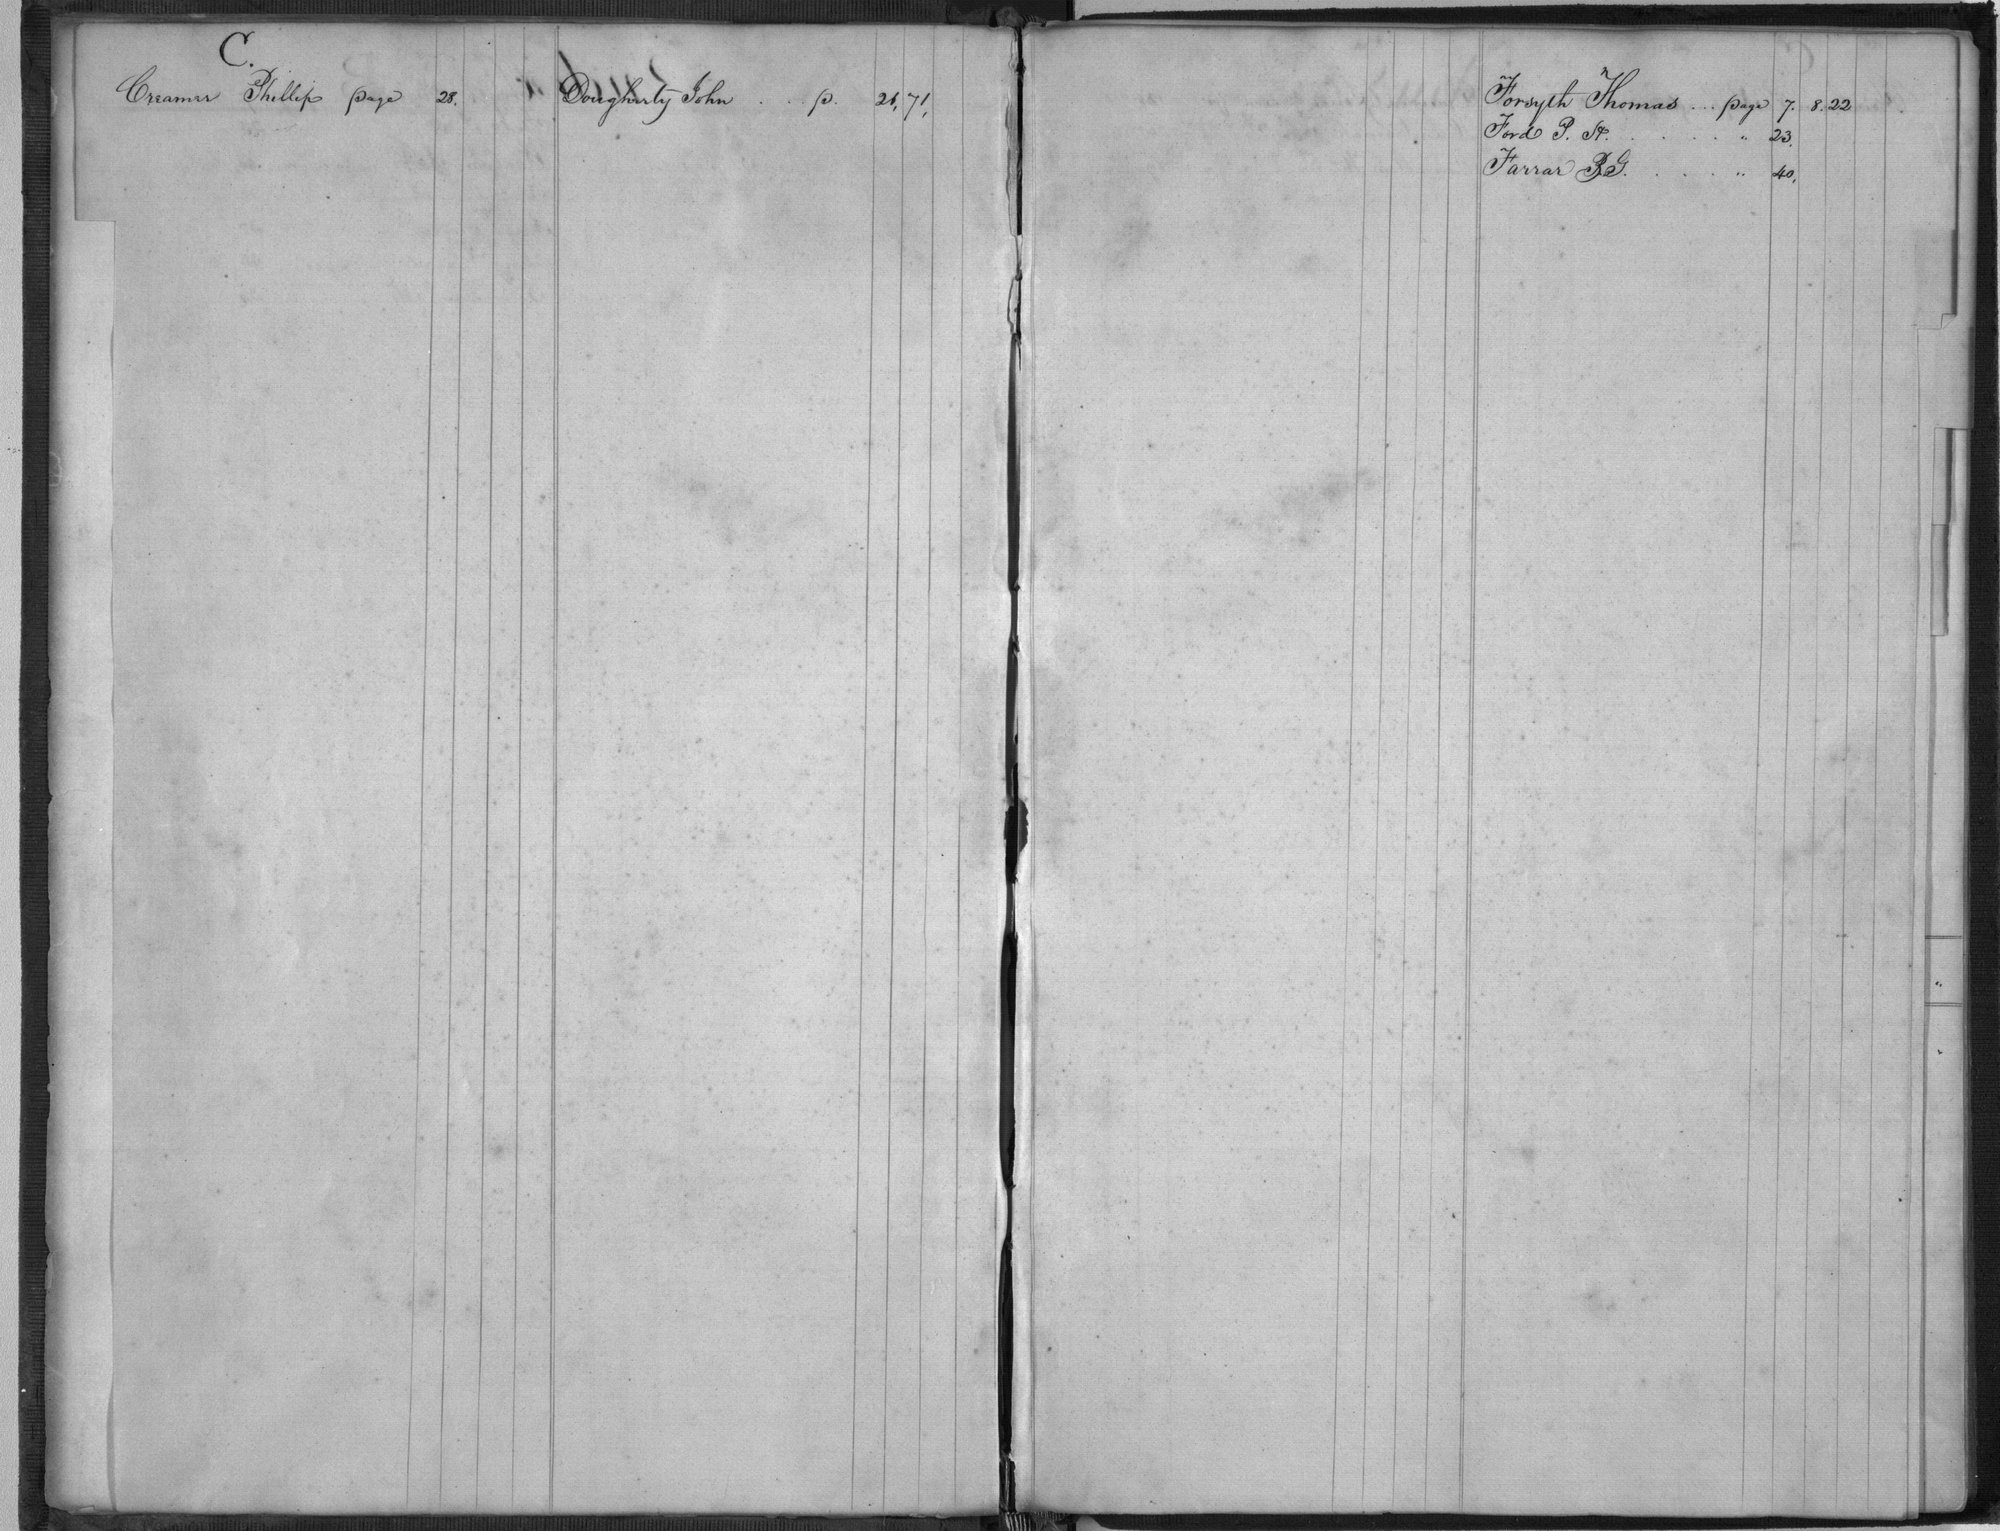 United States Office of Indian Affairs, Central Superintendency, St. Louis, Missouri. Volume 26, Accounts - Index C -  F